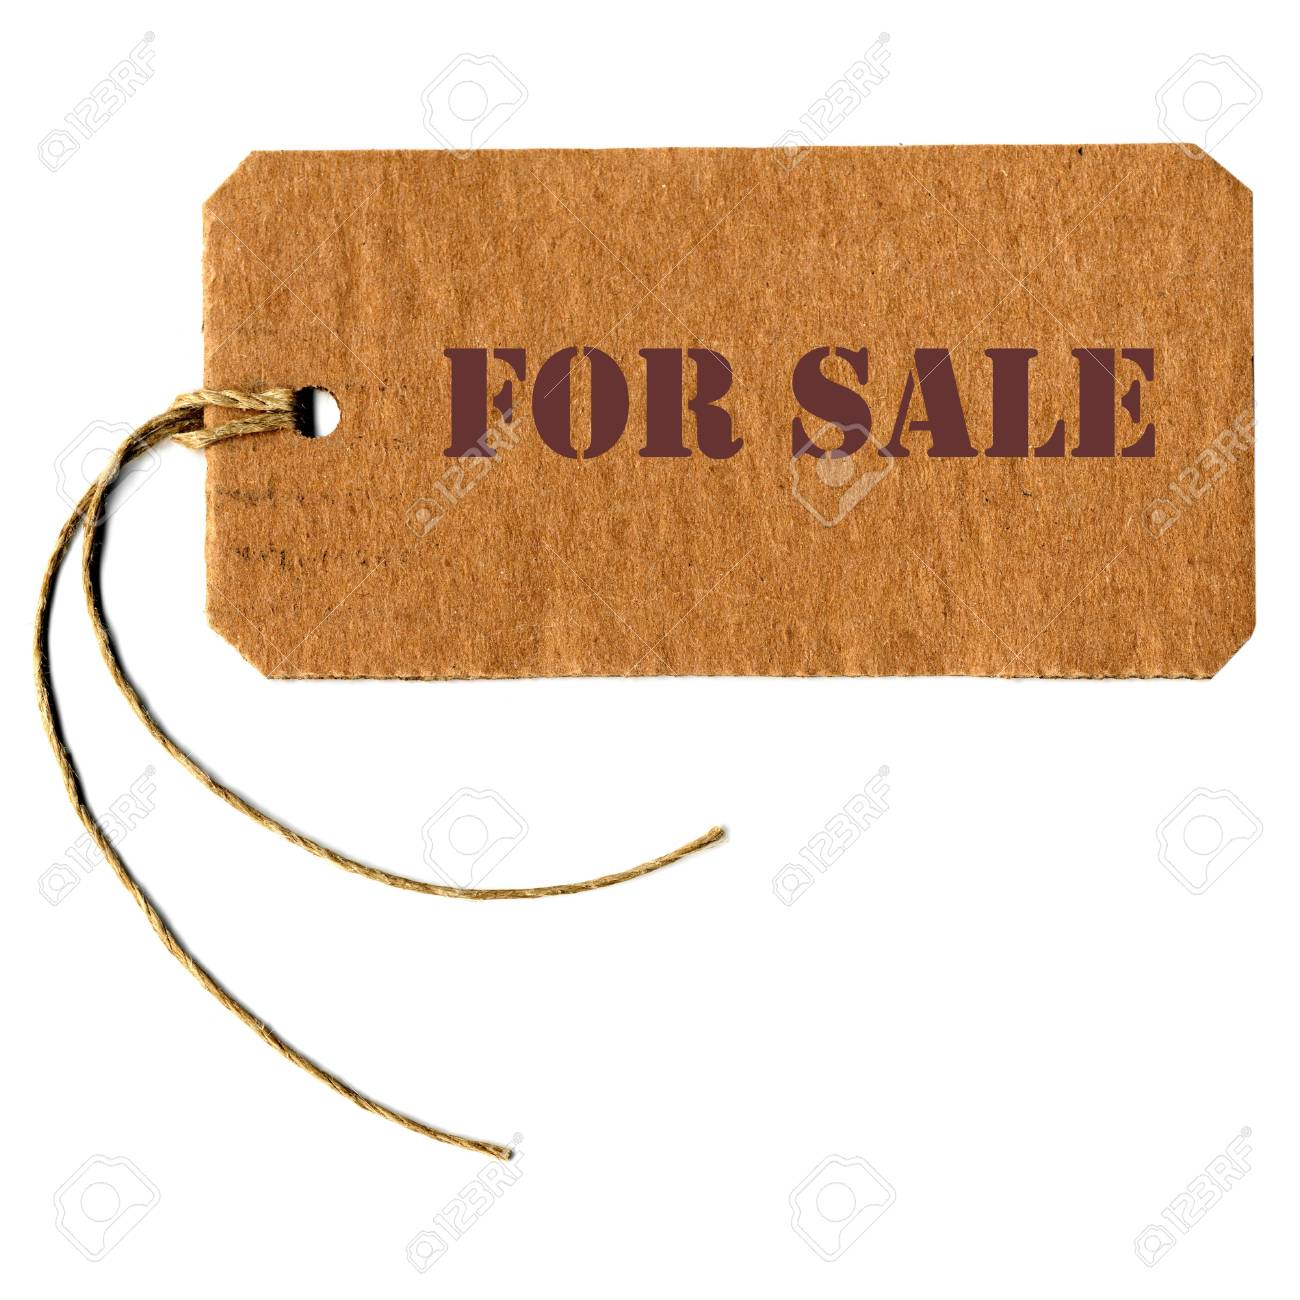 for sale -  tag label with string Stock Photo - 14130591